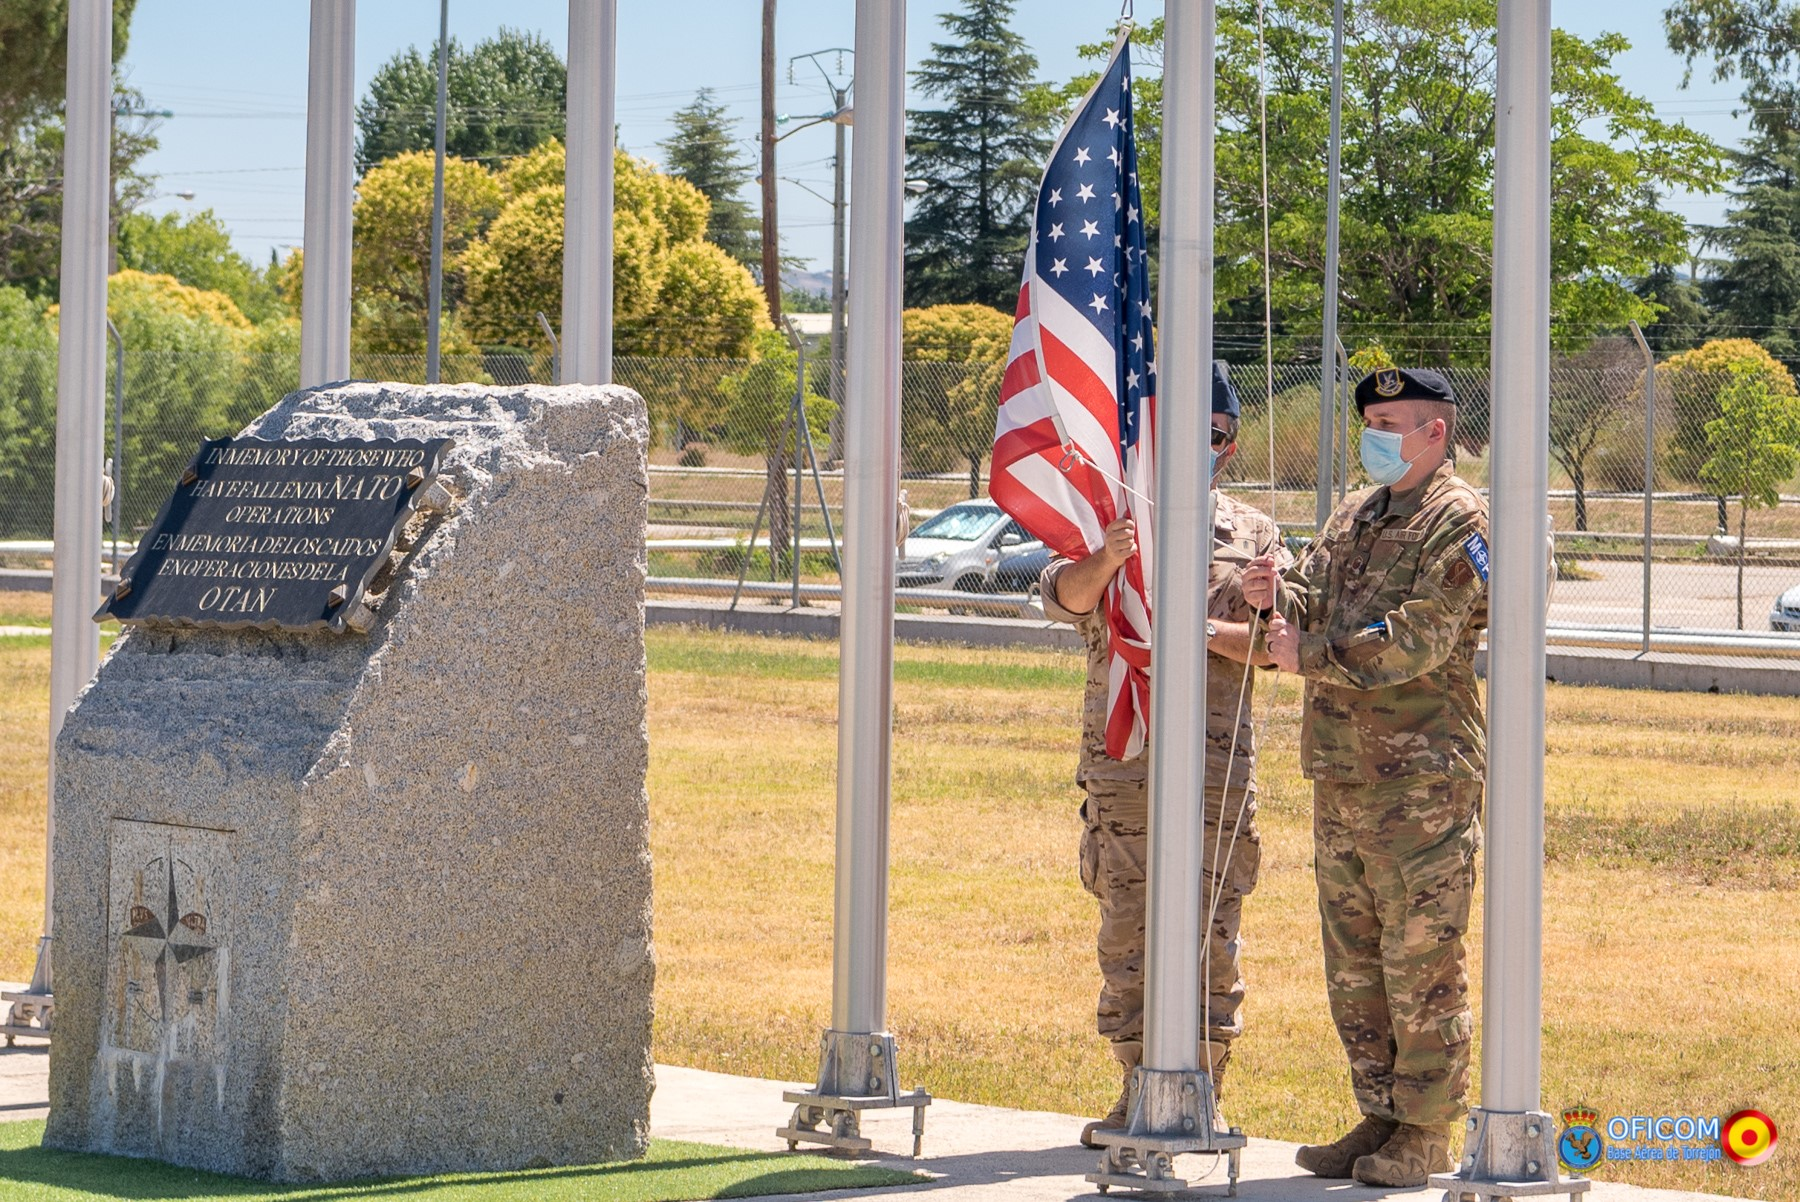 CAOC TJ raises U.S. flag on a ceremony  honoring U.S. Independence day